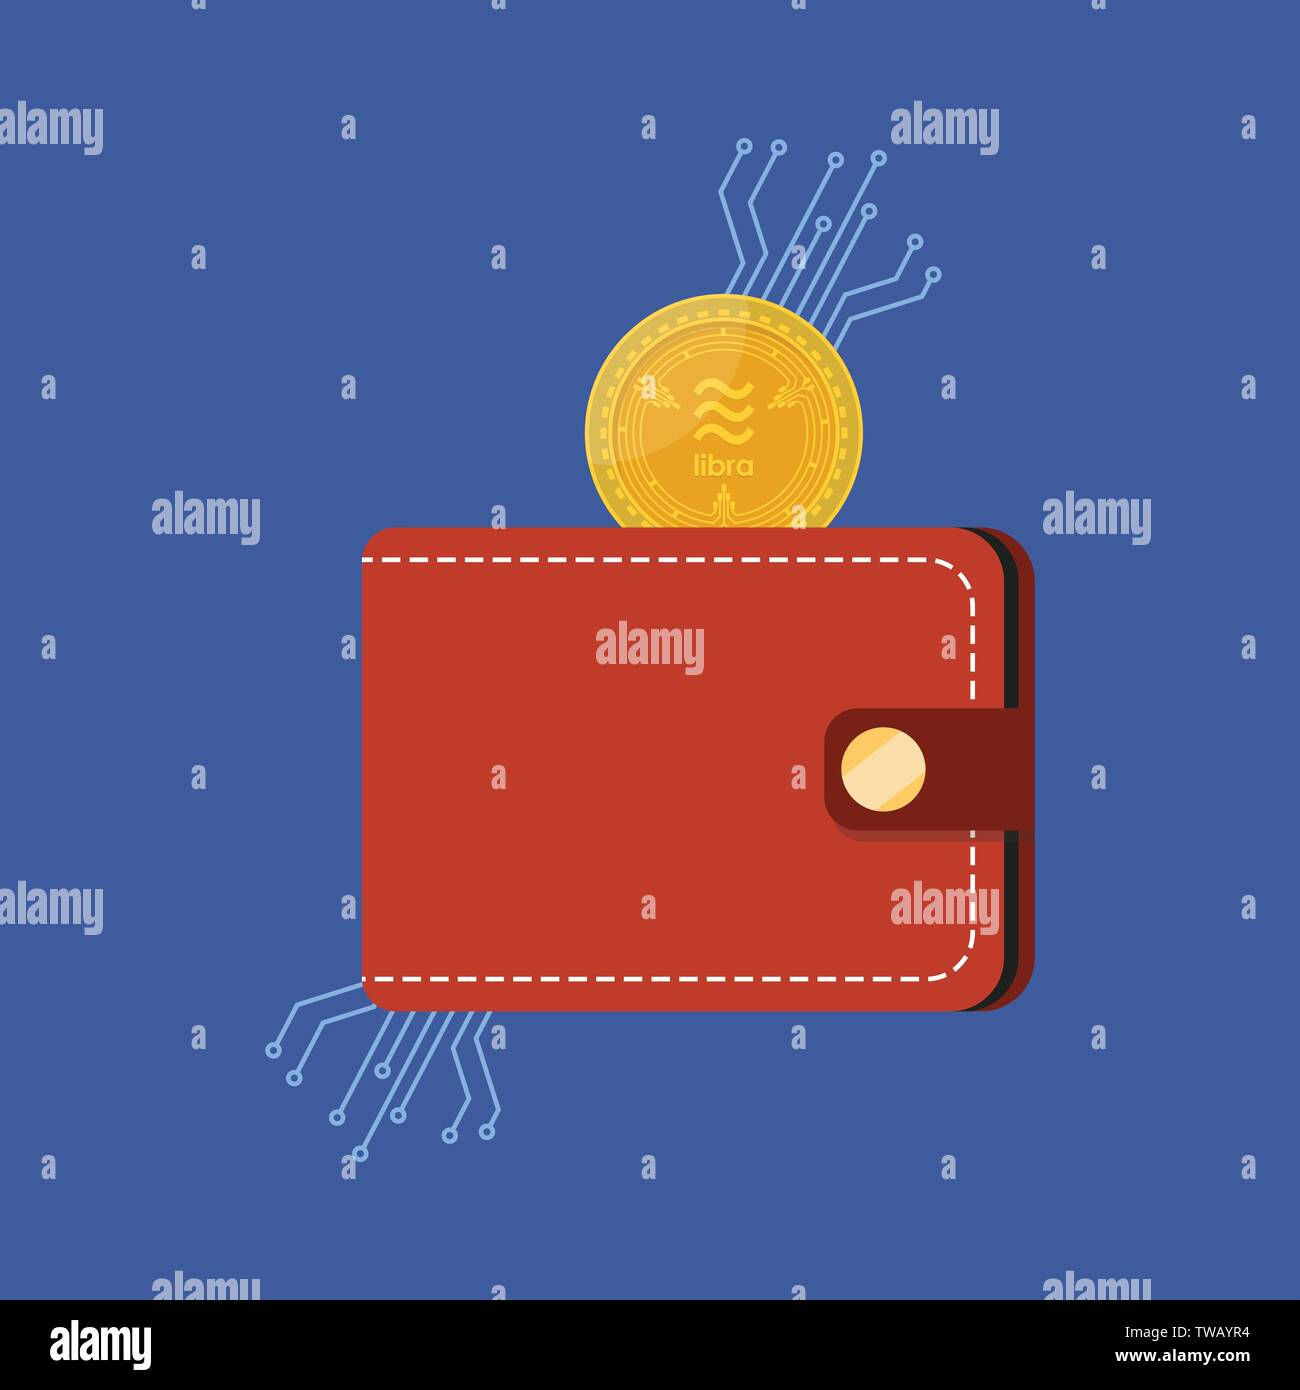 Libra money currency with wallet. Vector illustration - Stock Image